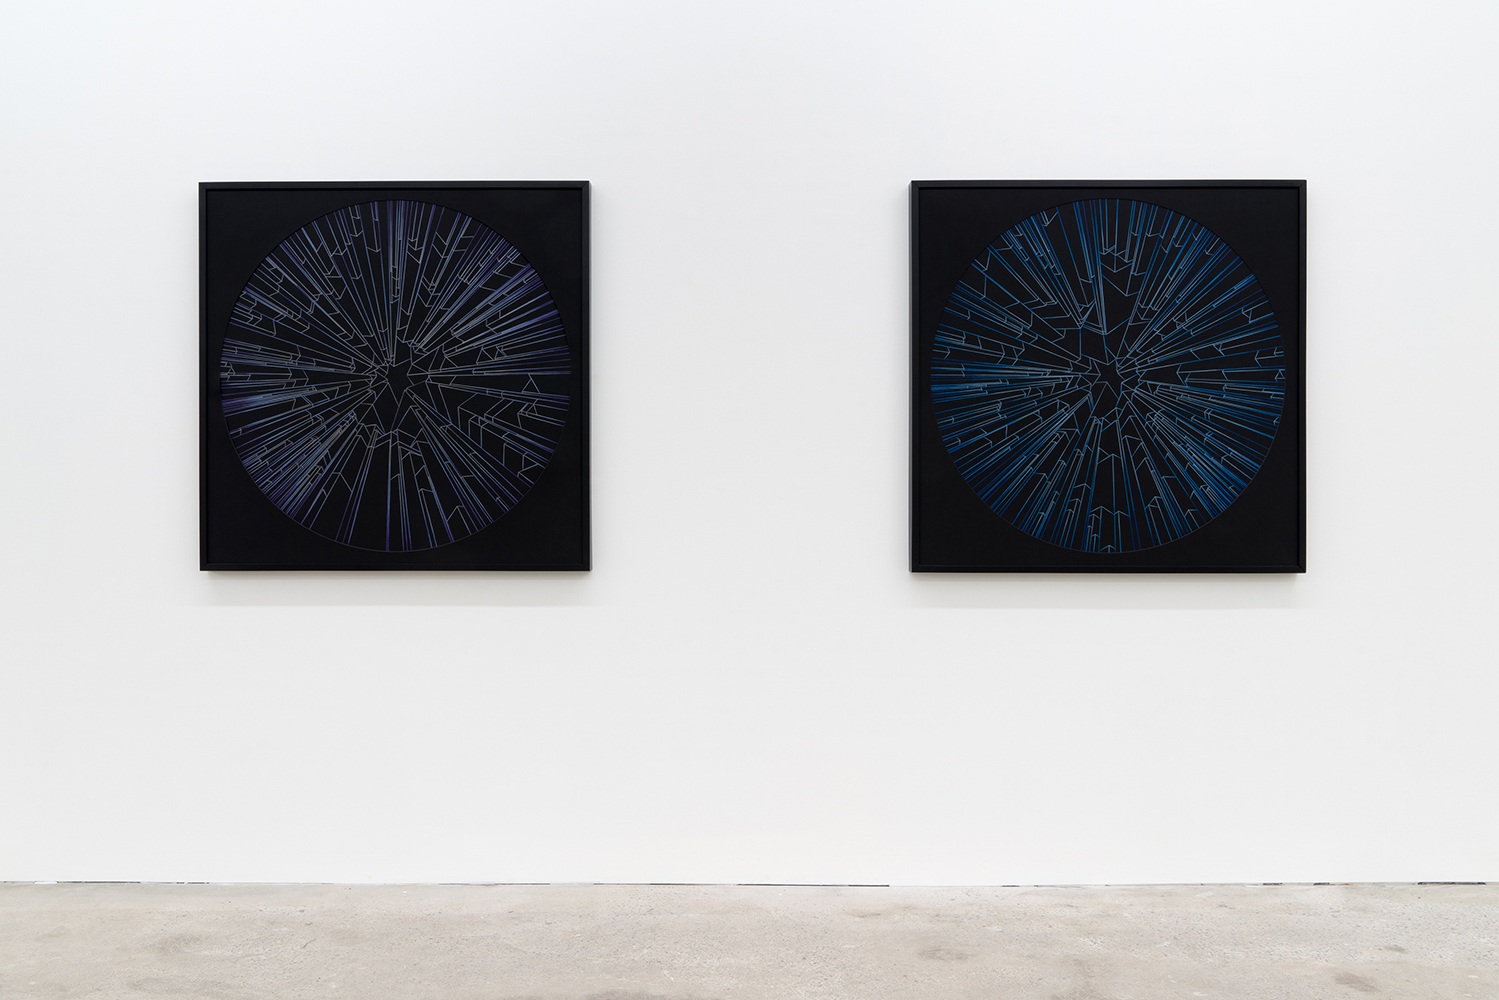 Ciel , 2019, exhibition view, Galerie Nicolas Robert, photo : Jean-Michael Seminaro